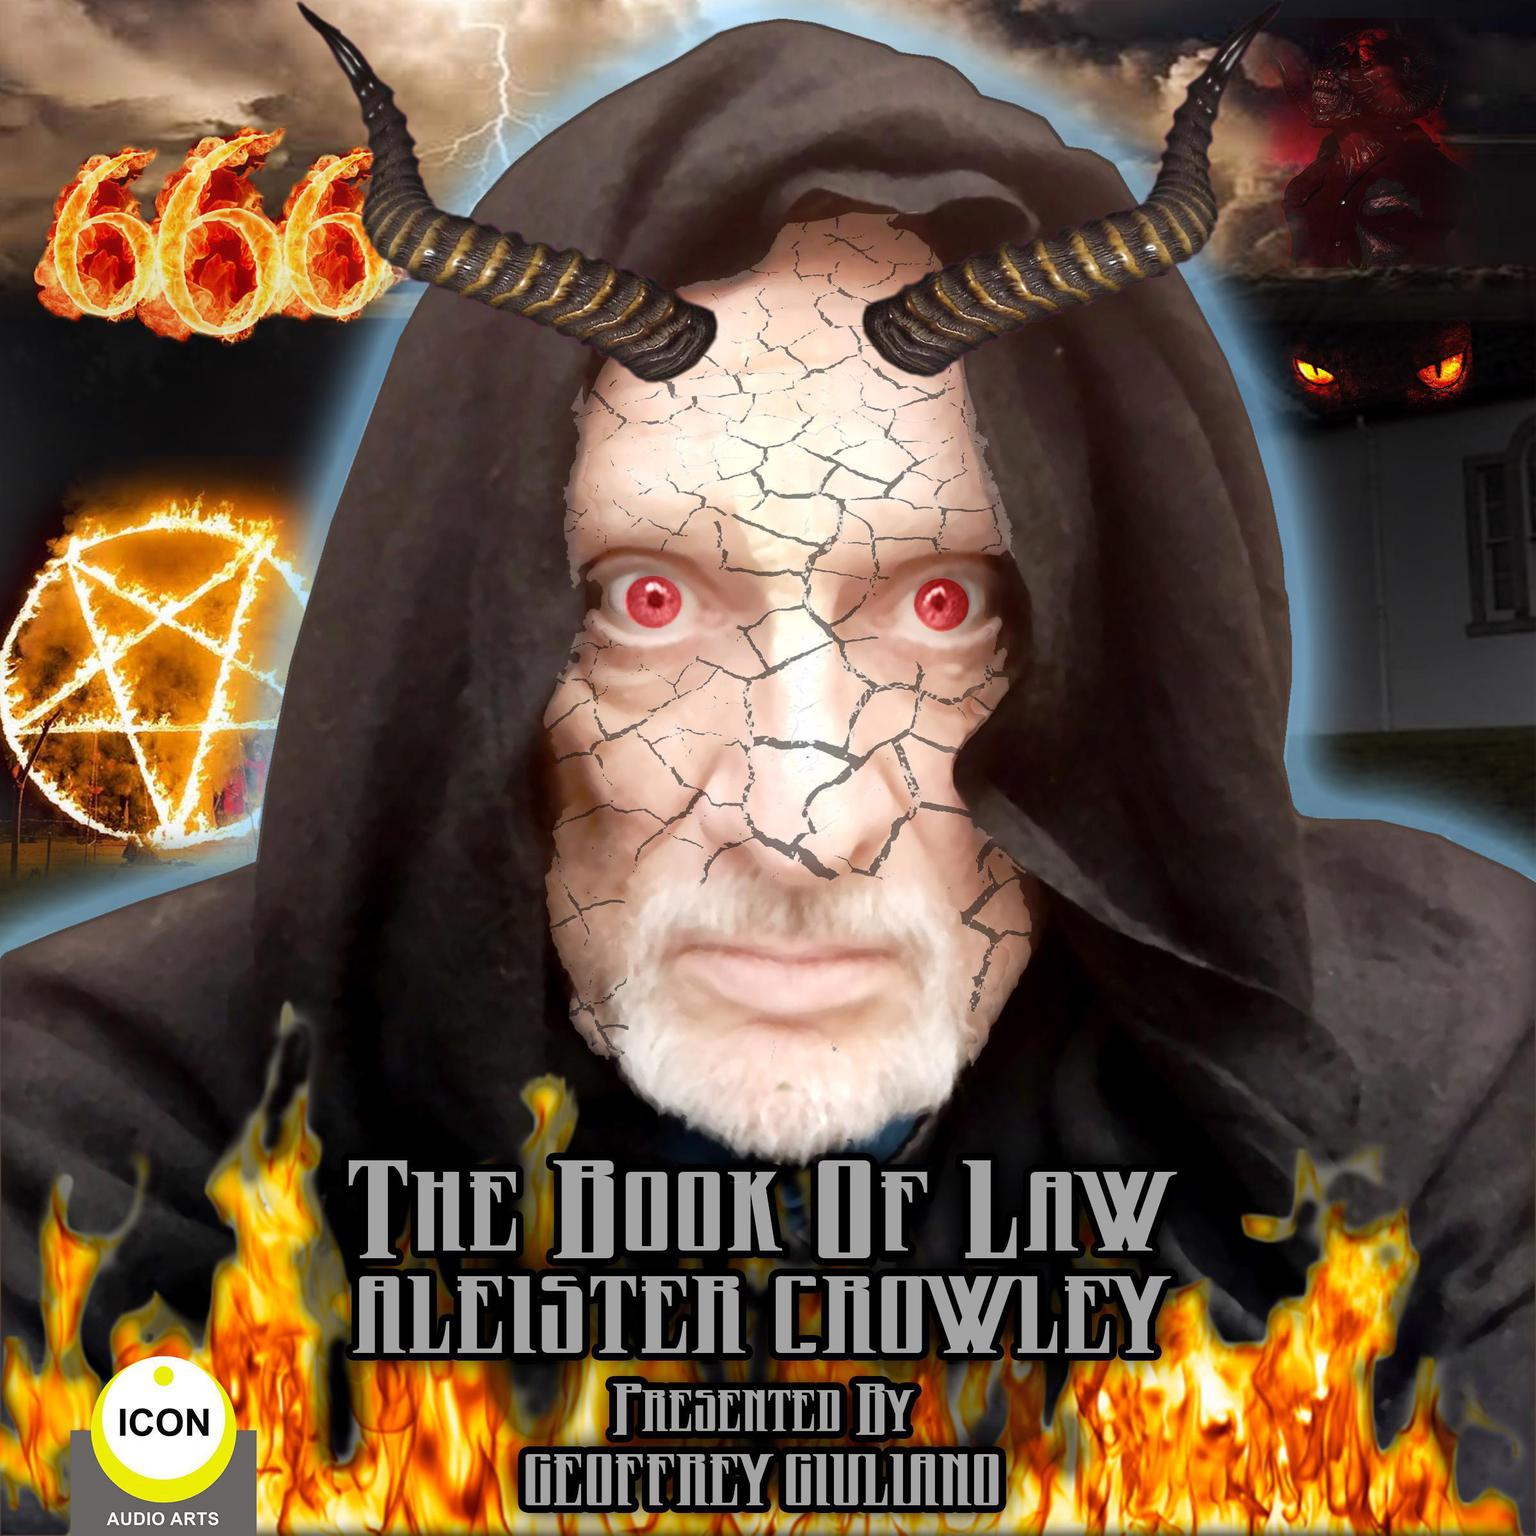 Aleister Crowley; The Book of Law  Audiobook, by Geoffrey Giuliano